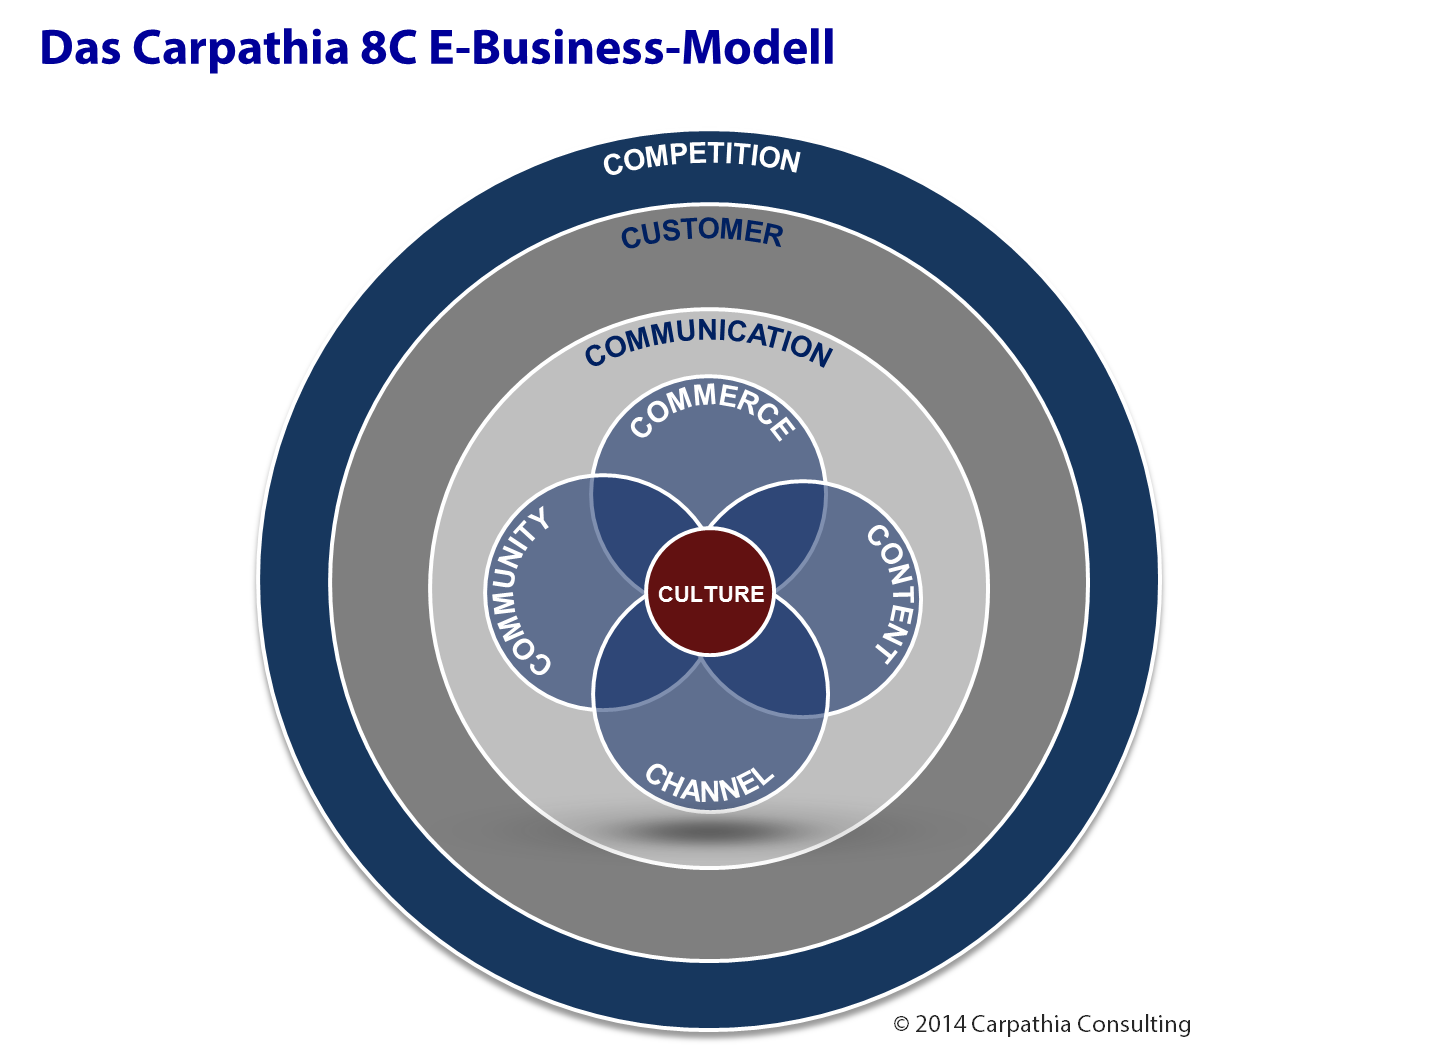 Carpathia 8C E-Business Modell